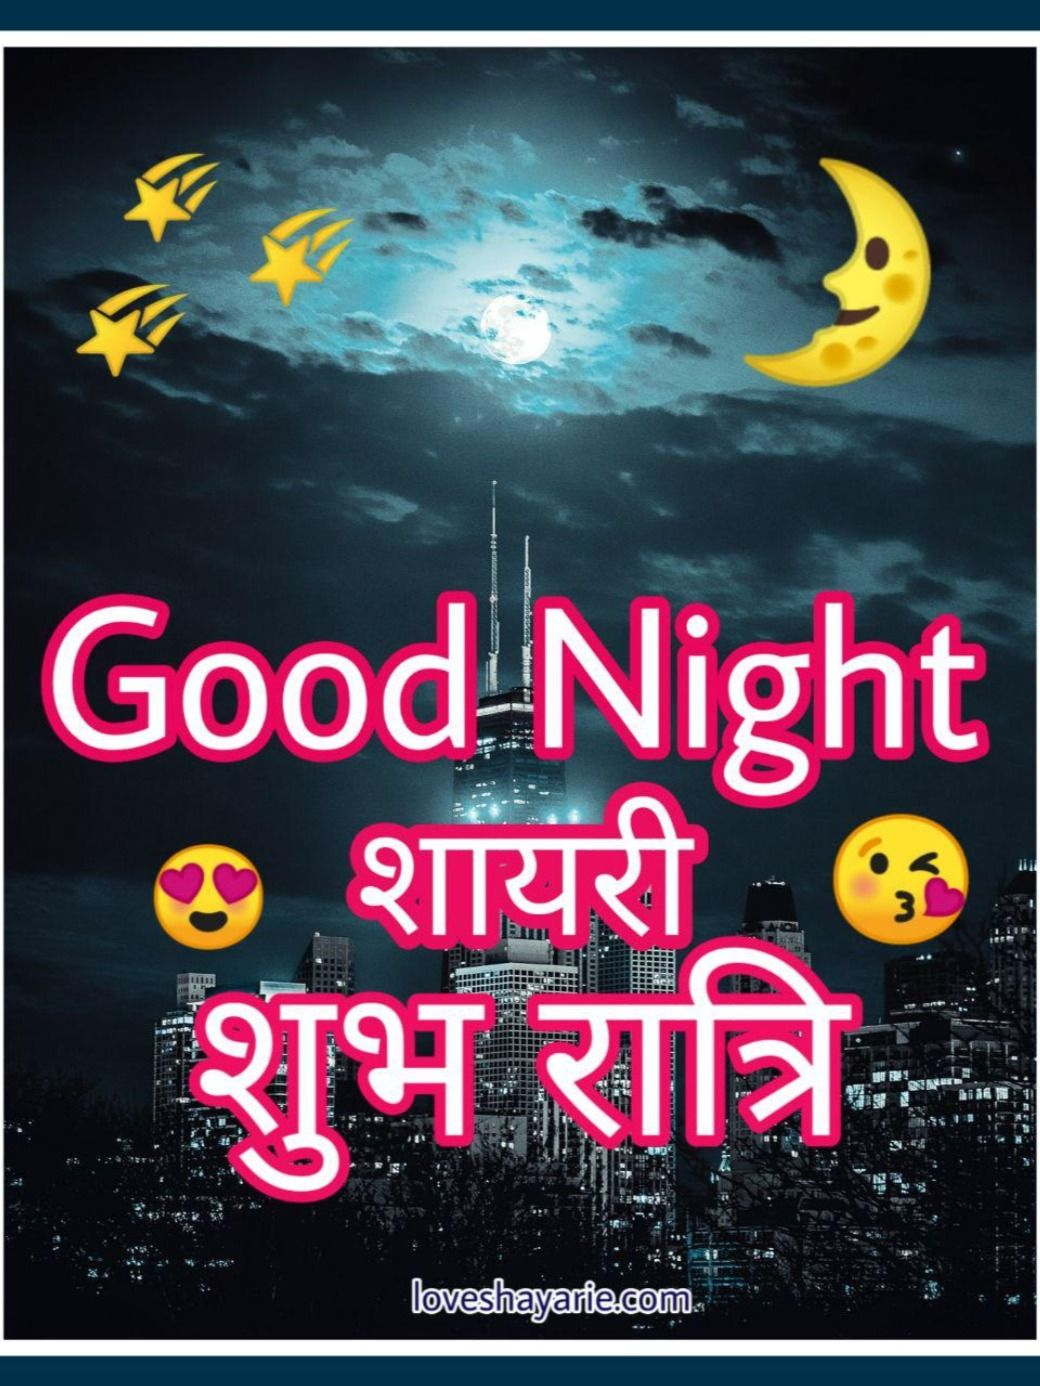 Good Night Shayari in 2020 Good night wishes, Good night